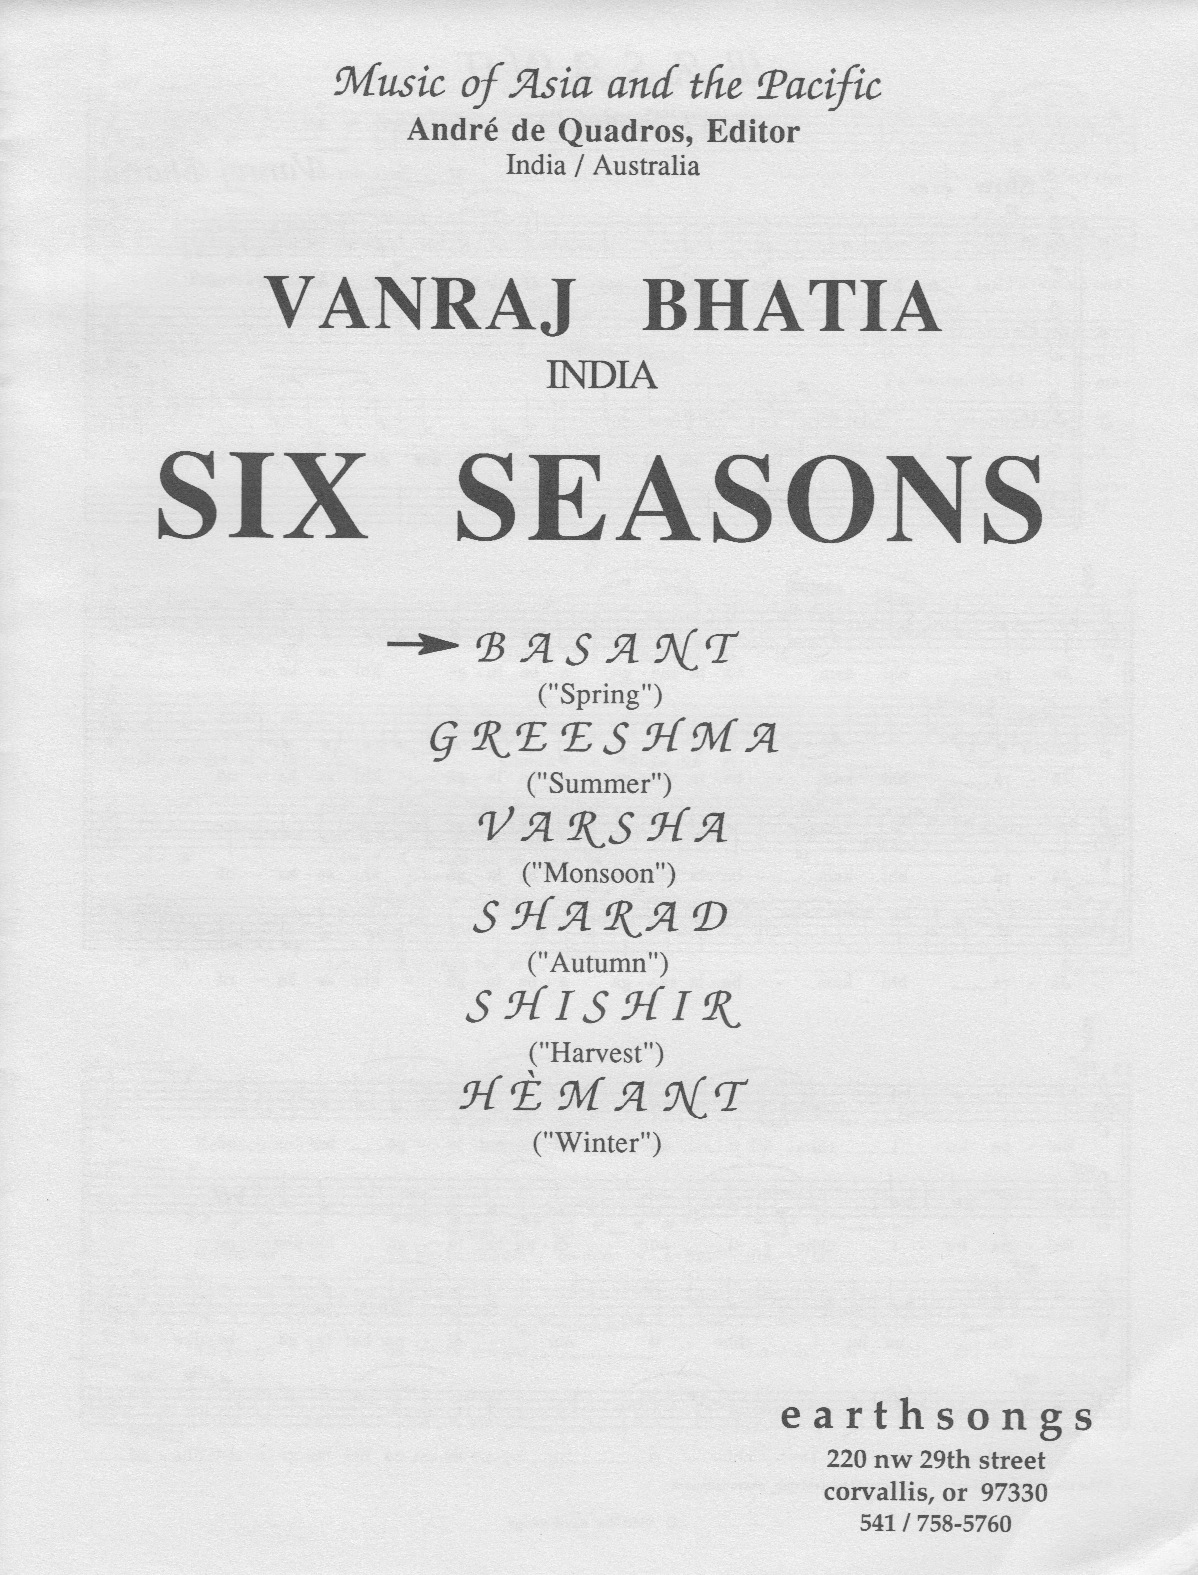 basant (satb) [S-41a] - $1 90 : earthsongs, one world · many voices